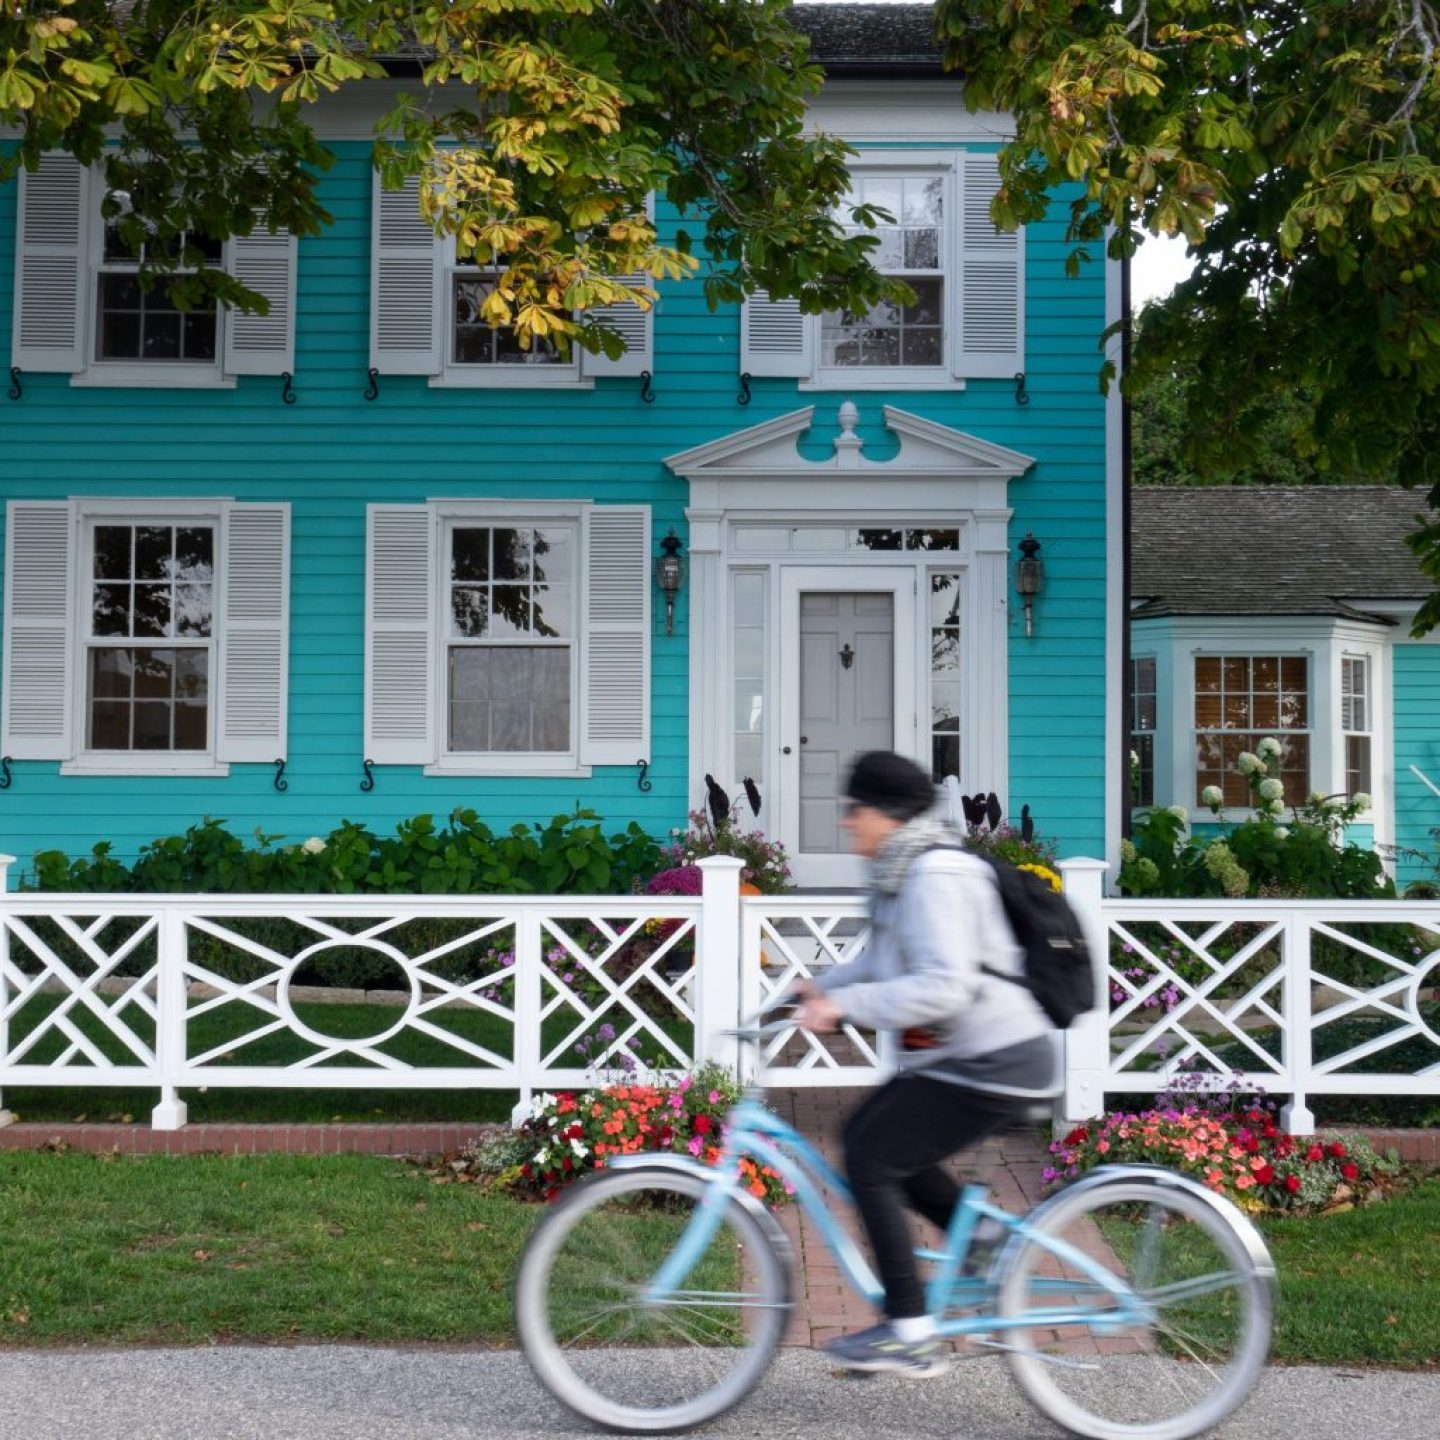 Mackinac Island Bike Rental: The ultimate guide on where to rent a bike, where to go and some facts around riding around the island